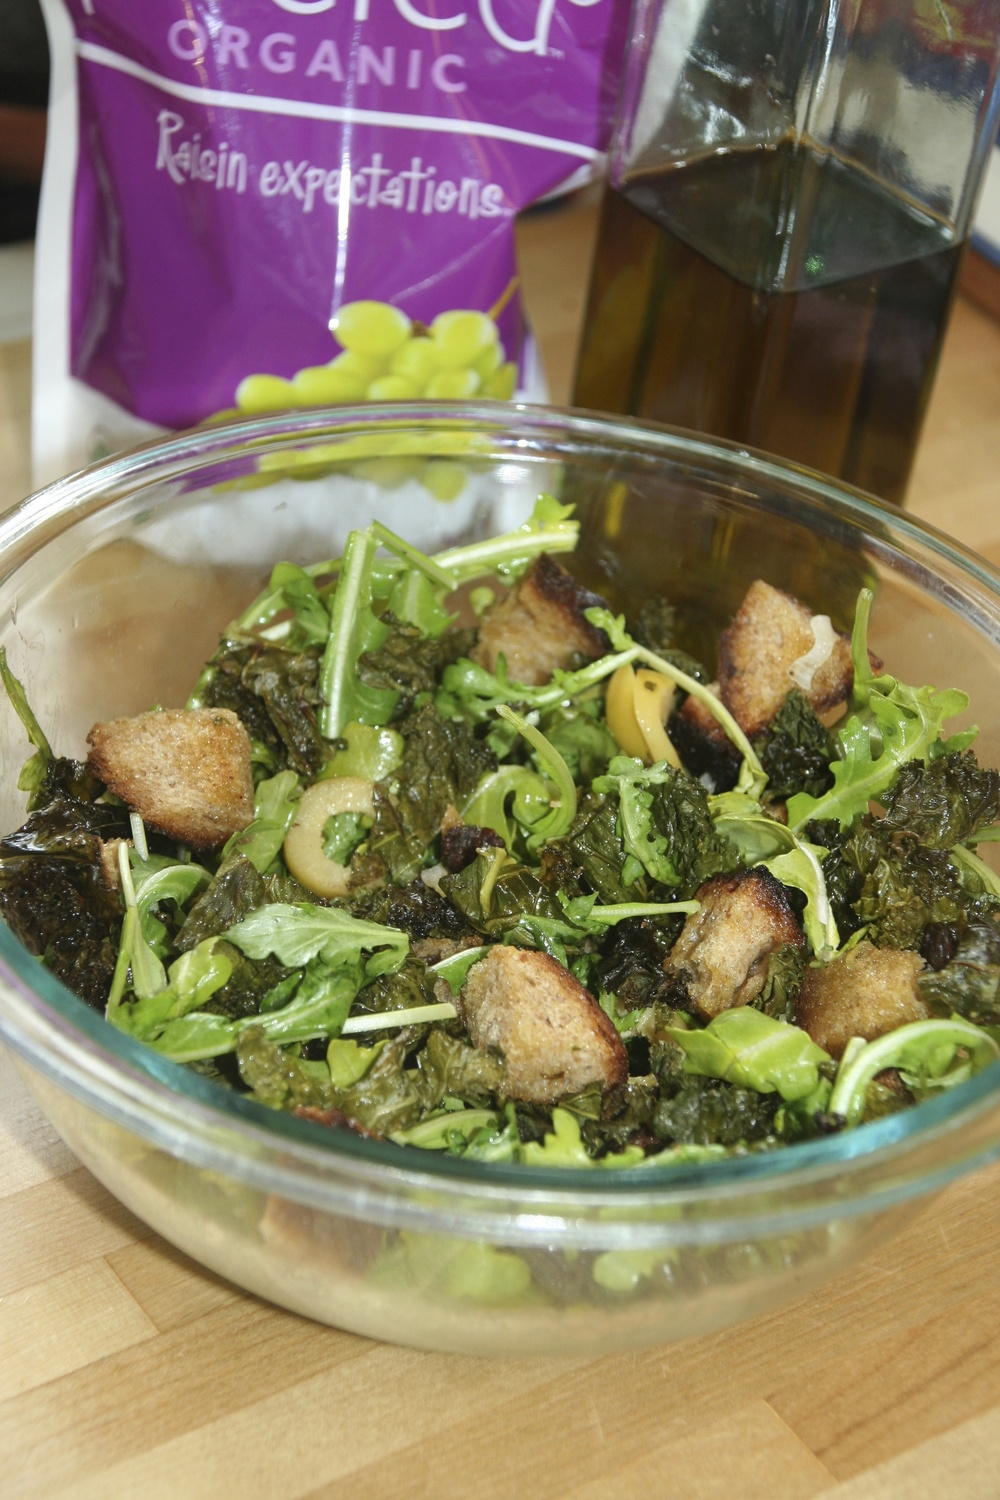 I assembled the salad by tossing the kale with arugula, green olives (that I sliced), 1/4 cup of my favorite raisins from Peeled Snacks and fresh chopped cilantro. I squeezed fresh lemon juice and sprinkled with salt and pepper and tossed in the croutons and roasted shallots at the very end. YUM.